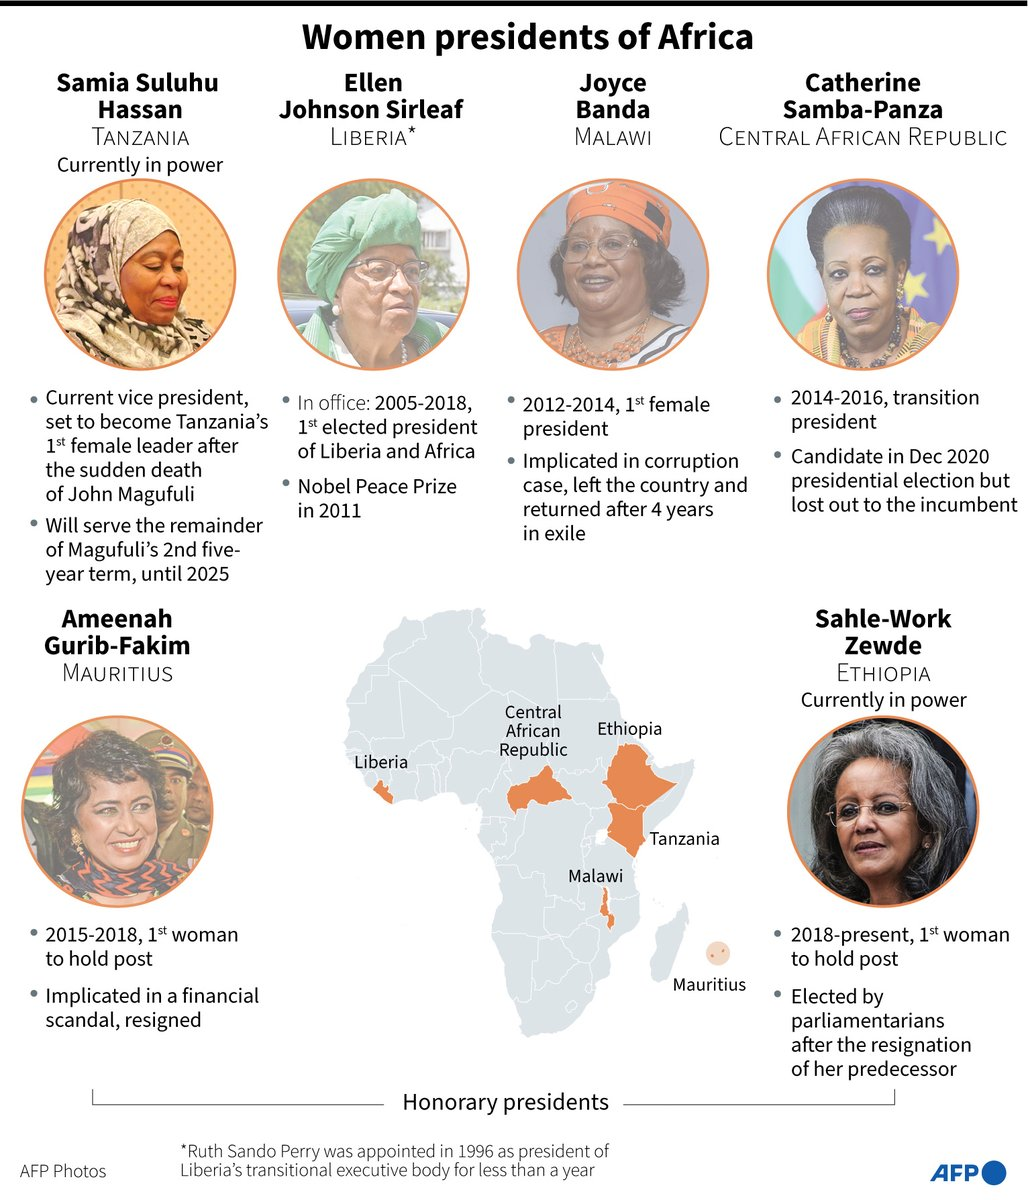 African Presidents and Honorary Presidents - AFP on Twitter